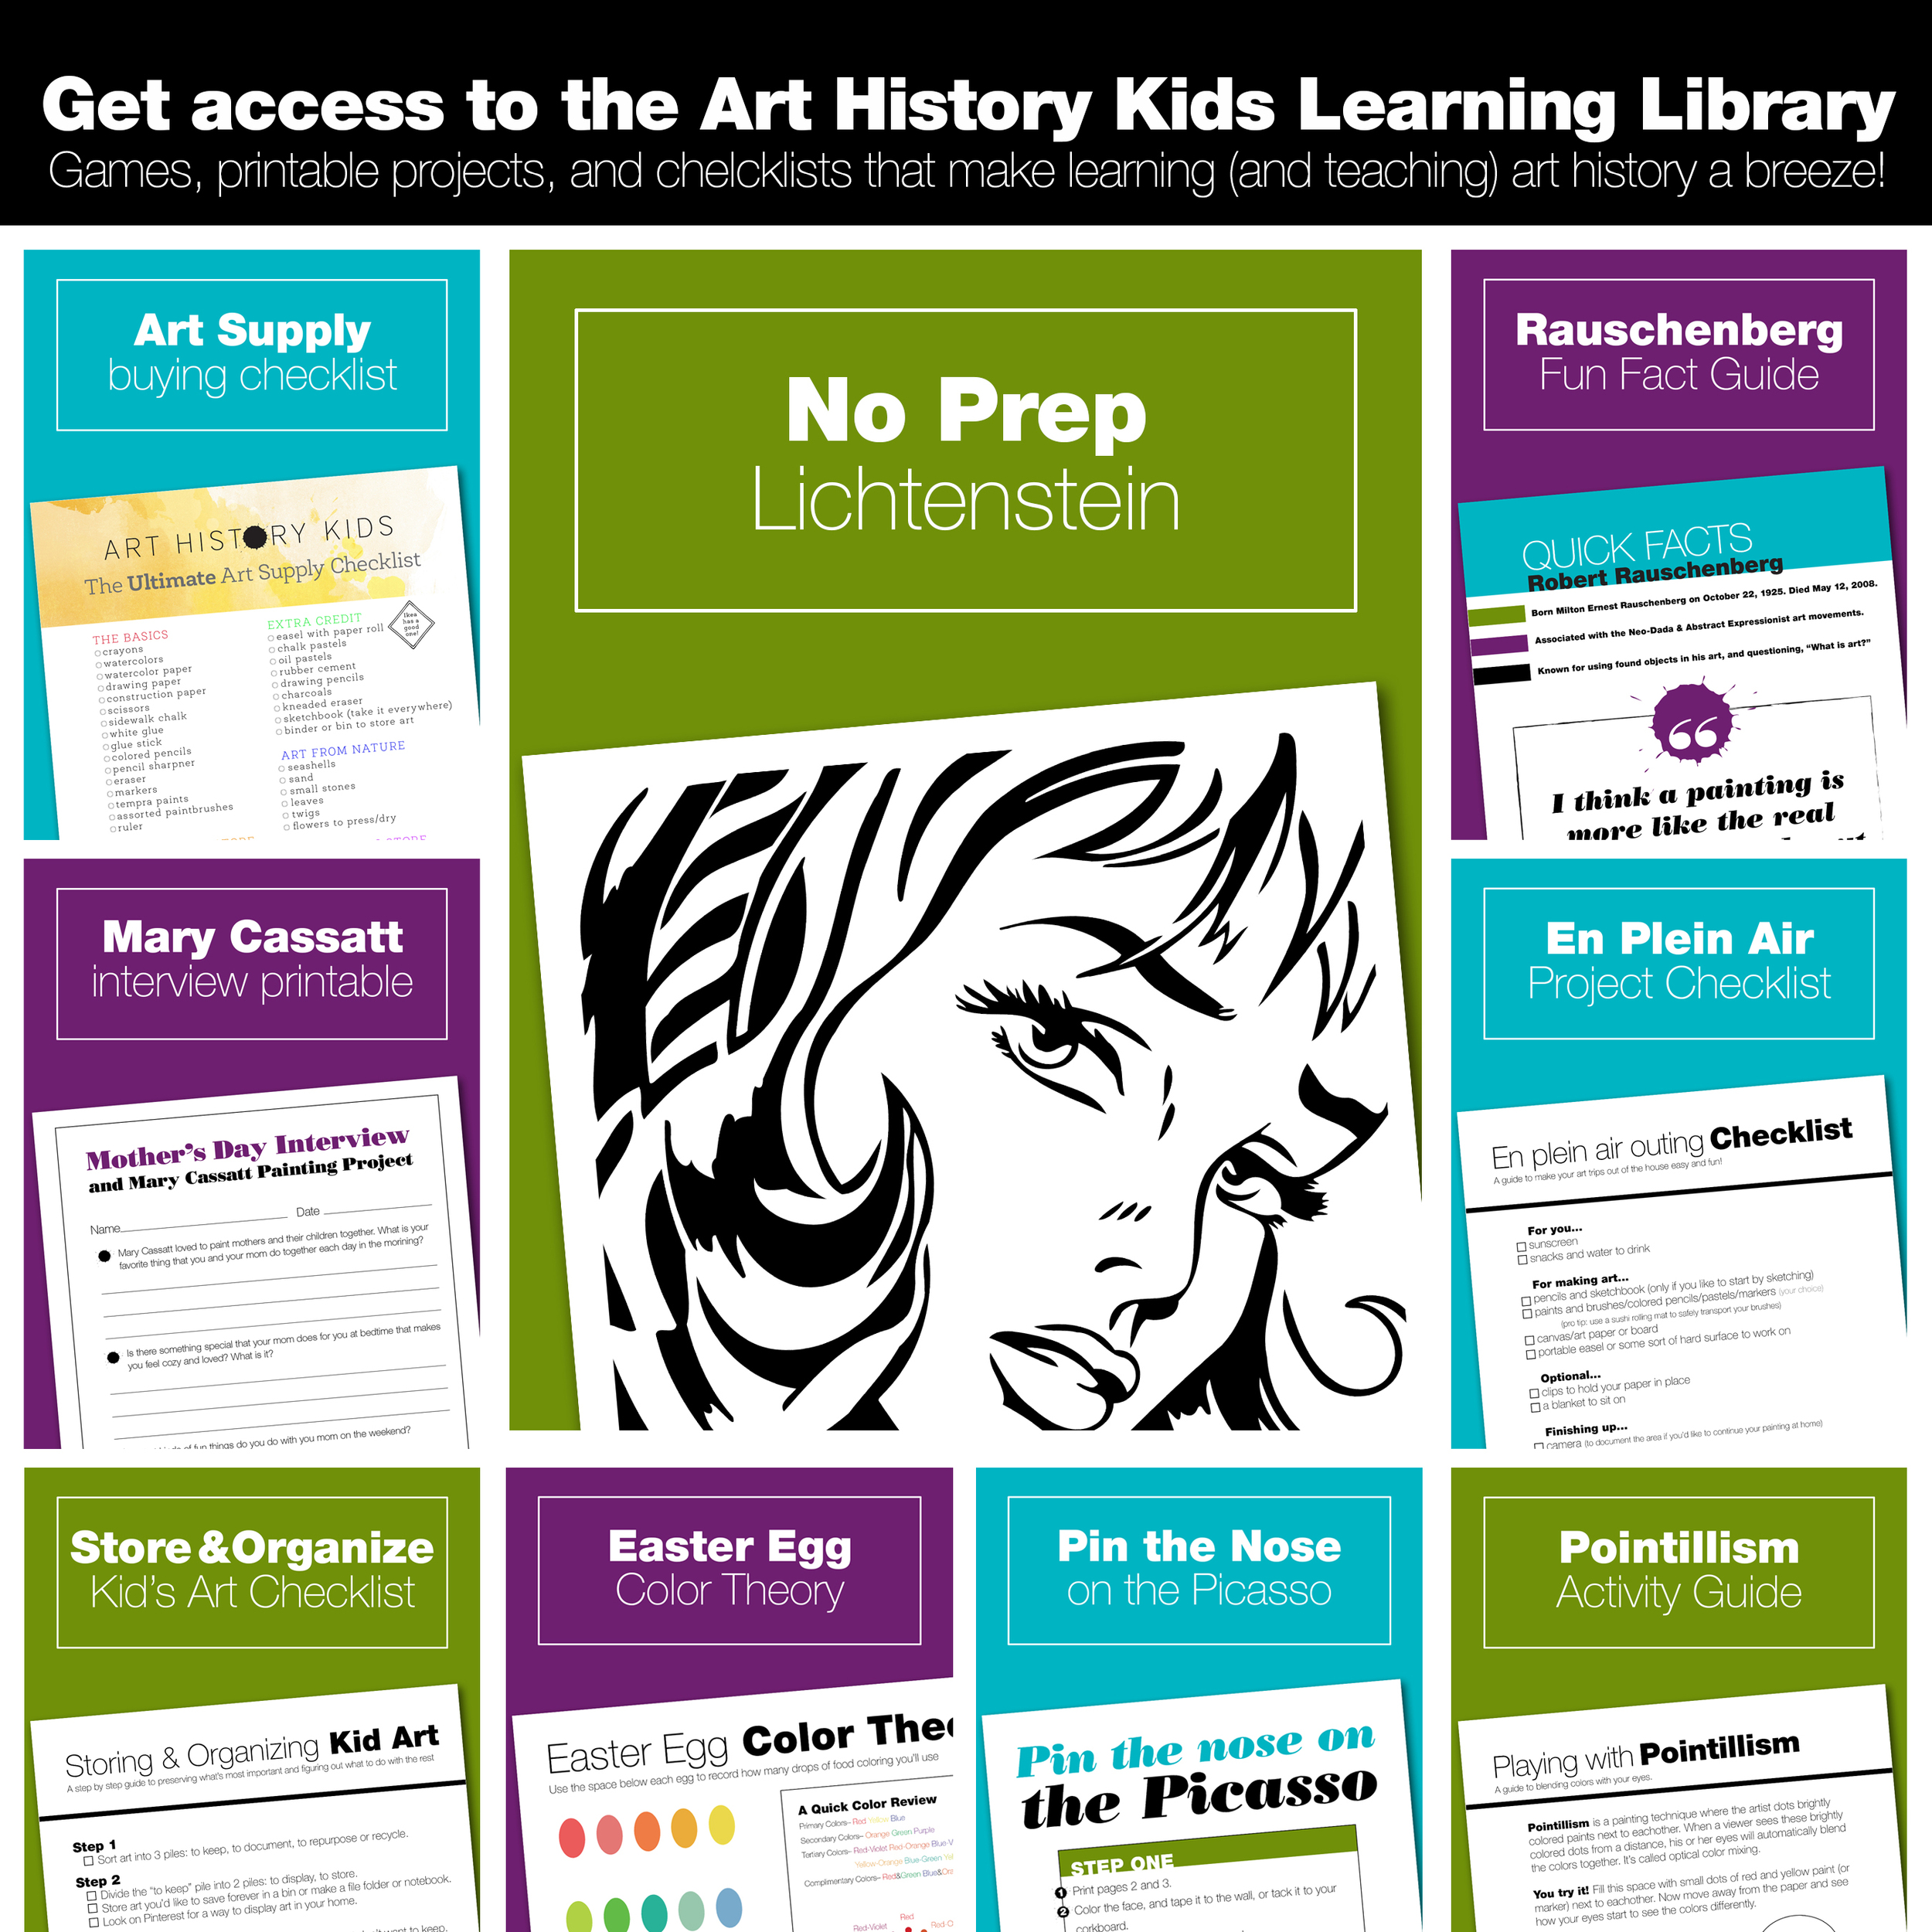 Join the Art History Kids mailing list to get instant access to art history printables, games, and checklists that make learning about art history with your kids fun and easy.